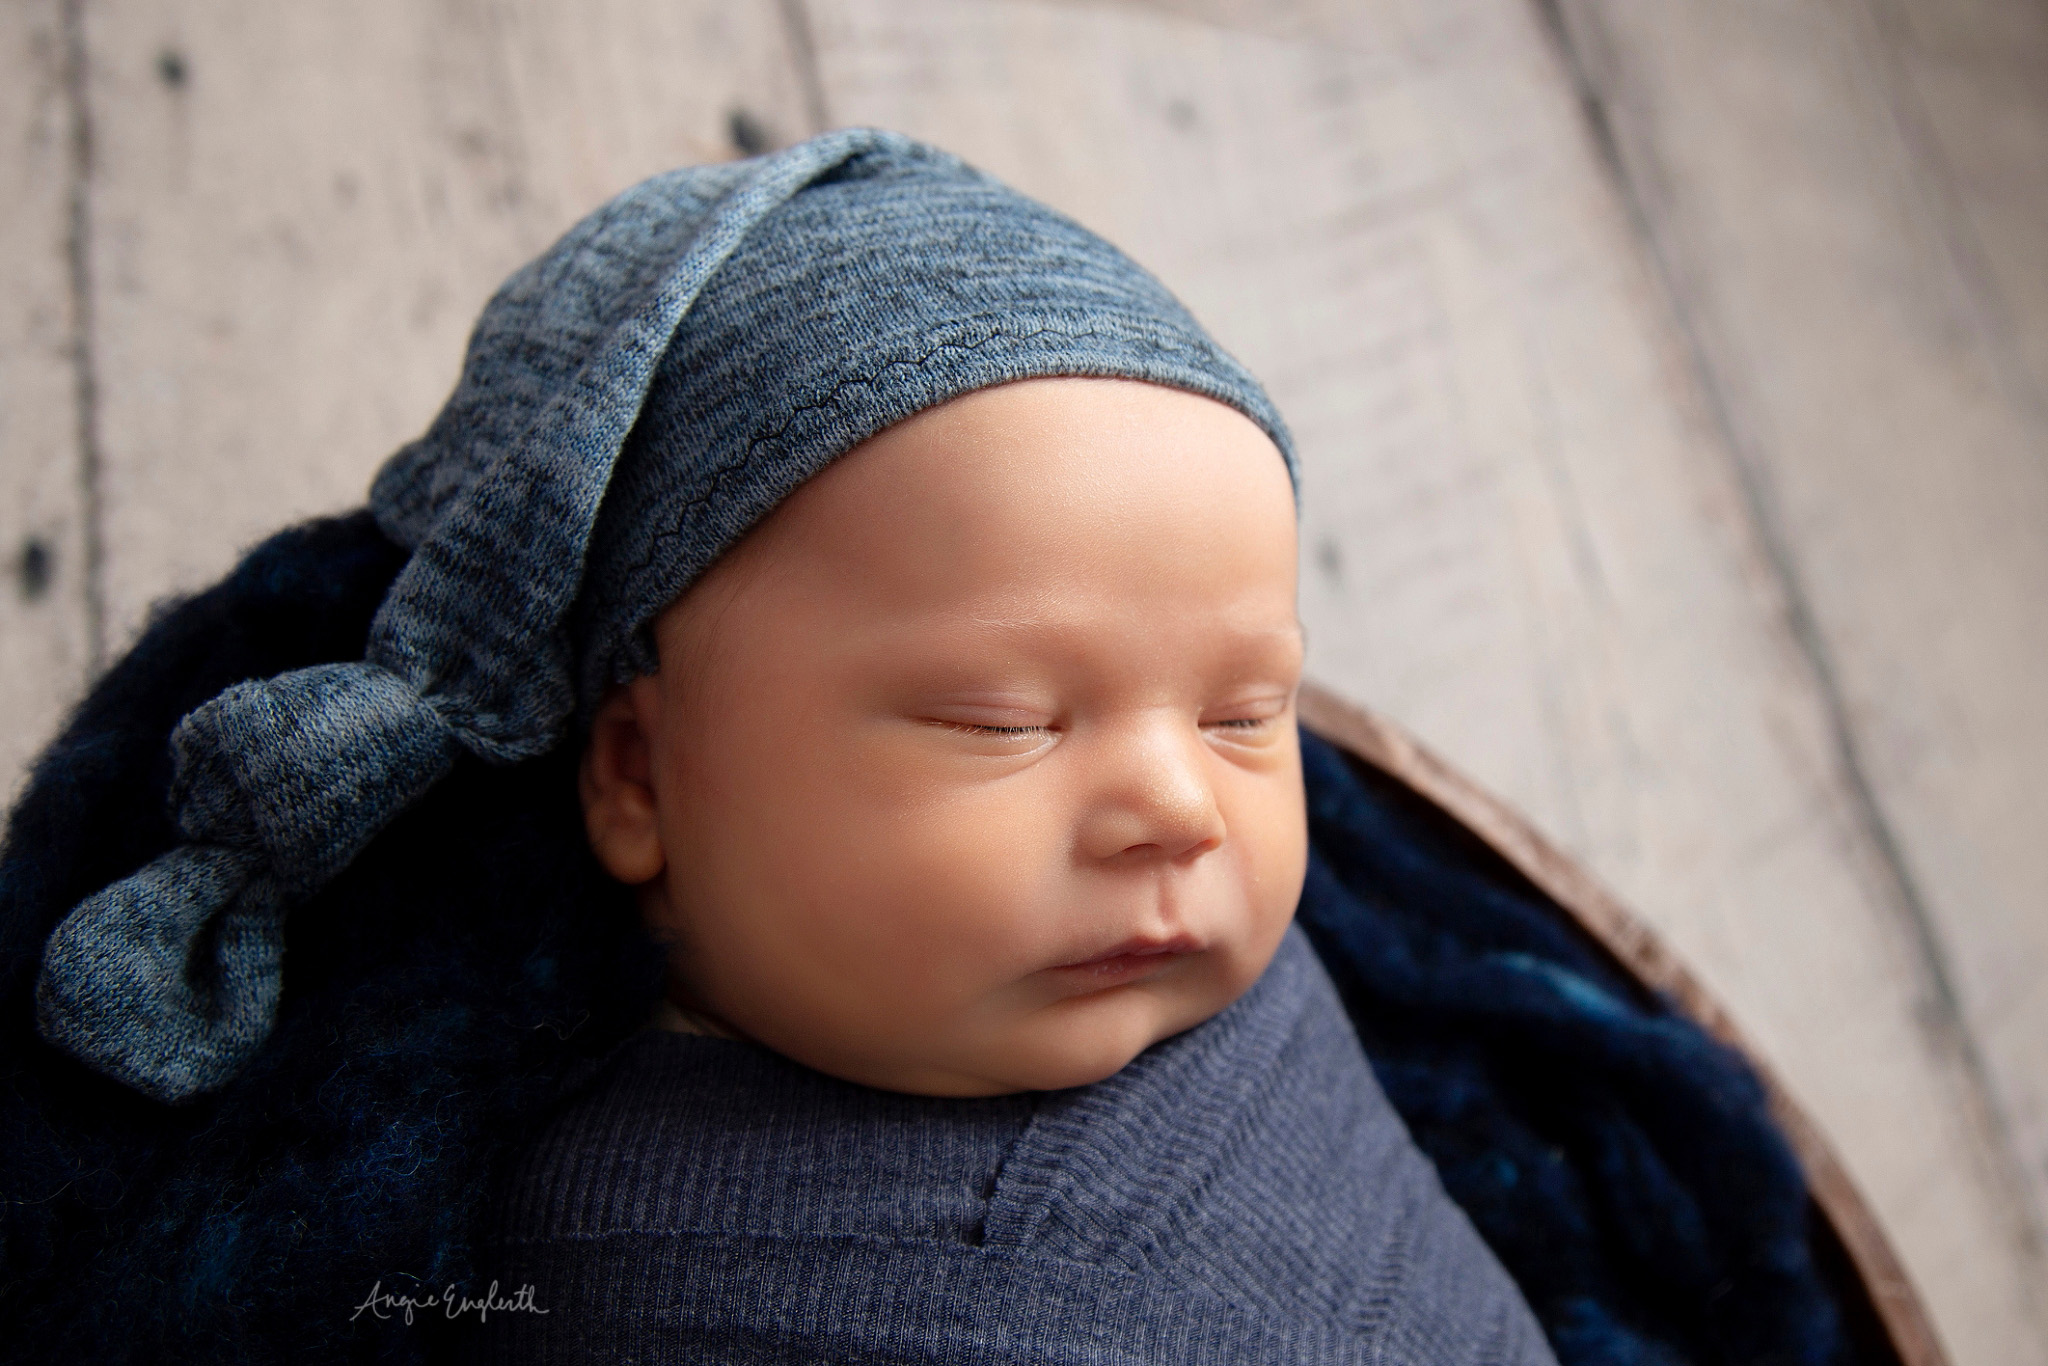 lancaster_newborn_photographer_angie_englerth_central_pa_013.jpg